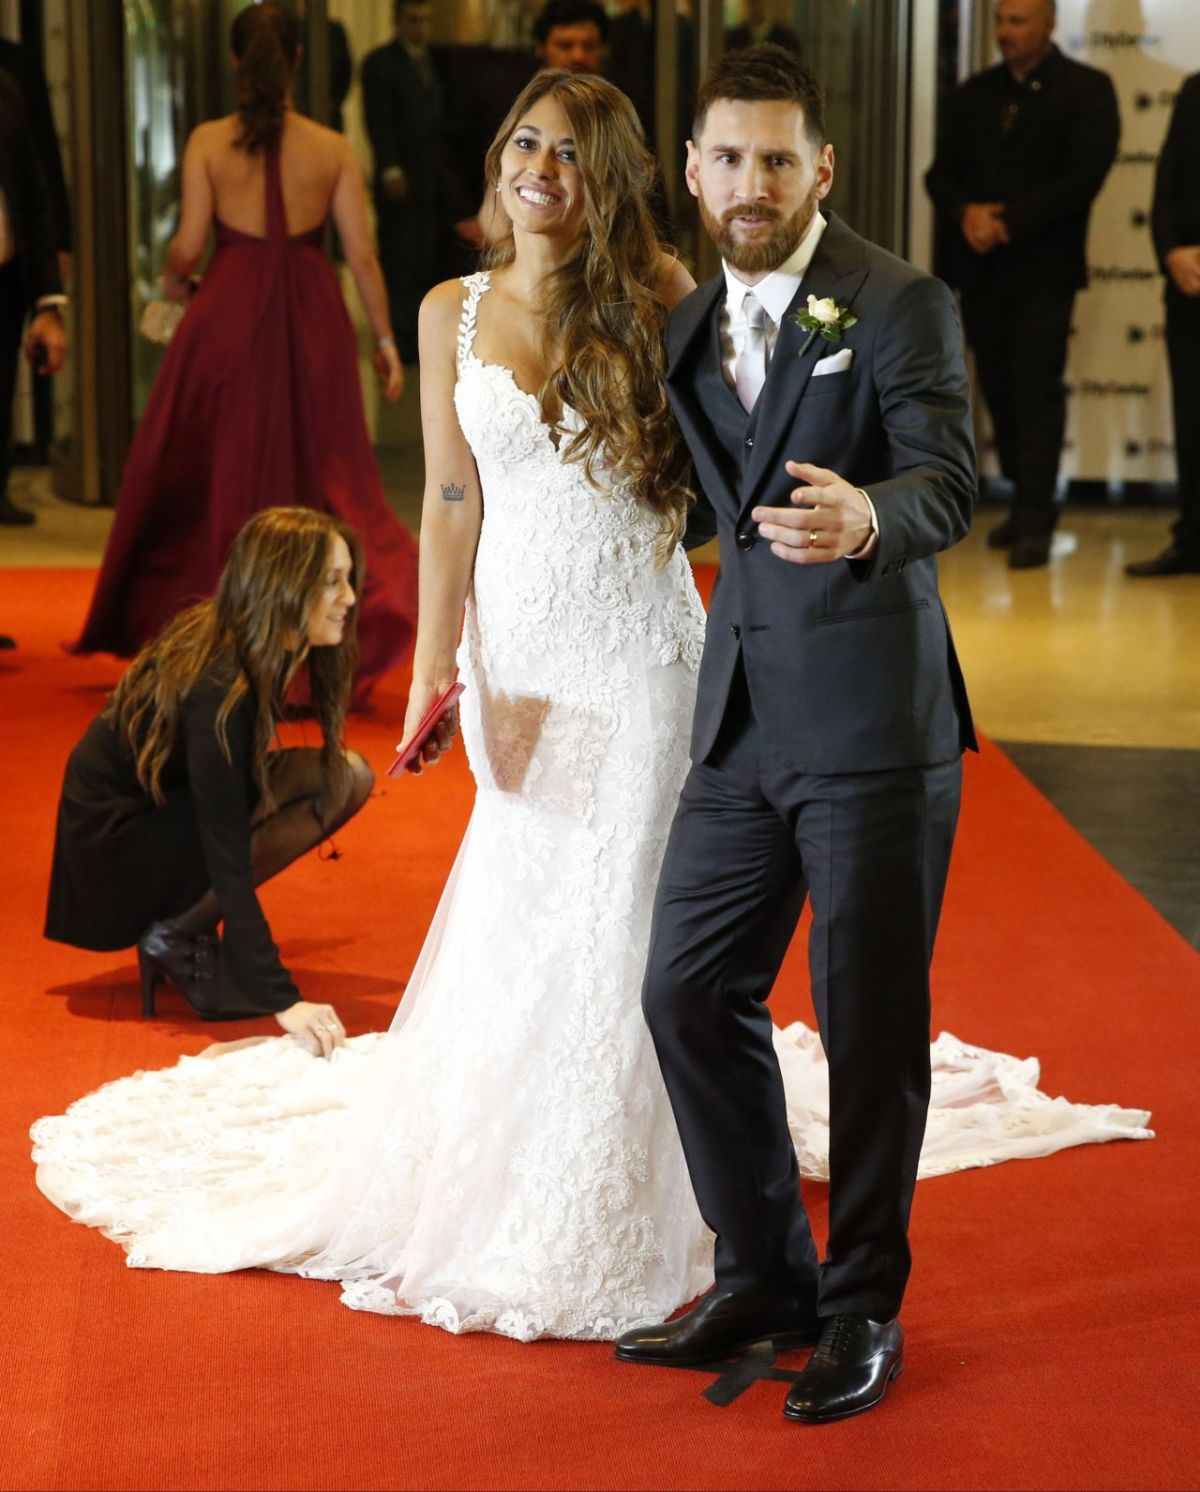 ANTONELLA ROCCUZZO with Lionel Messi at Wedding Reception in Argentina 06/30/2017